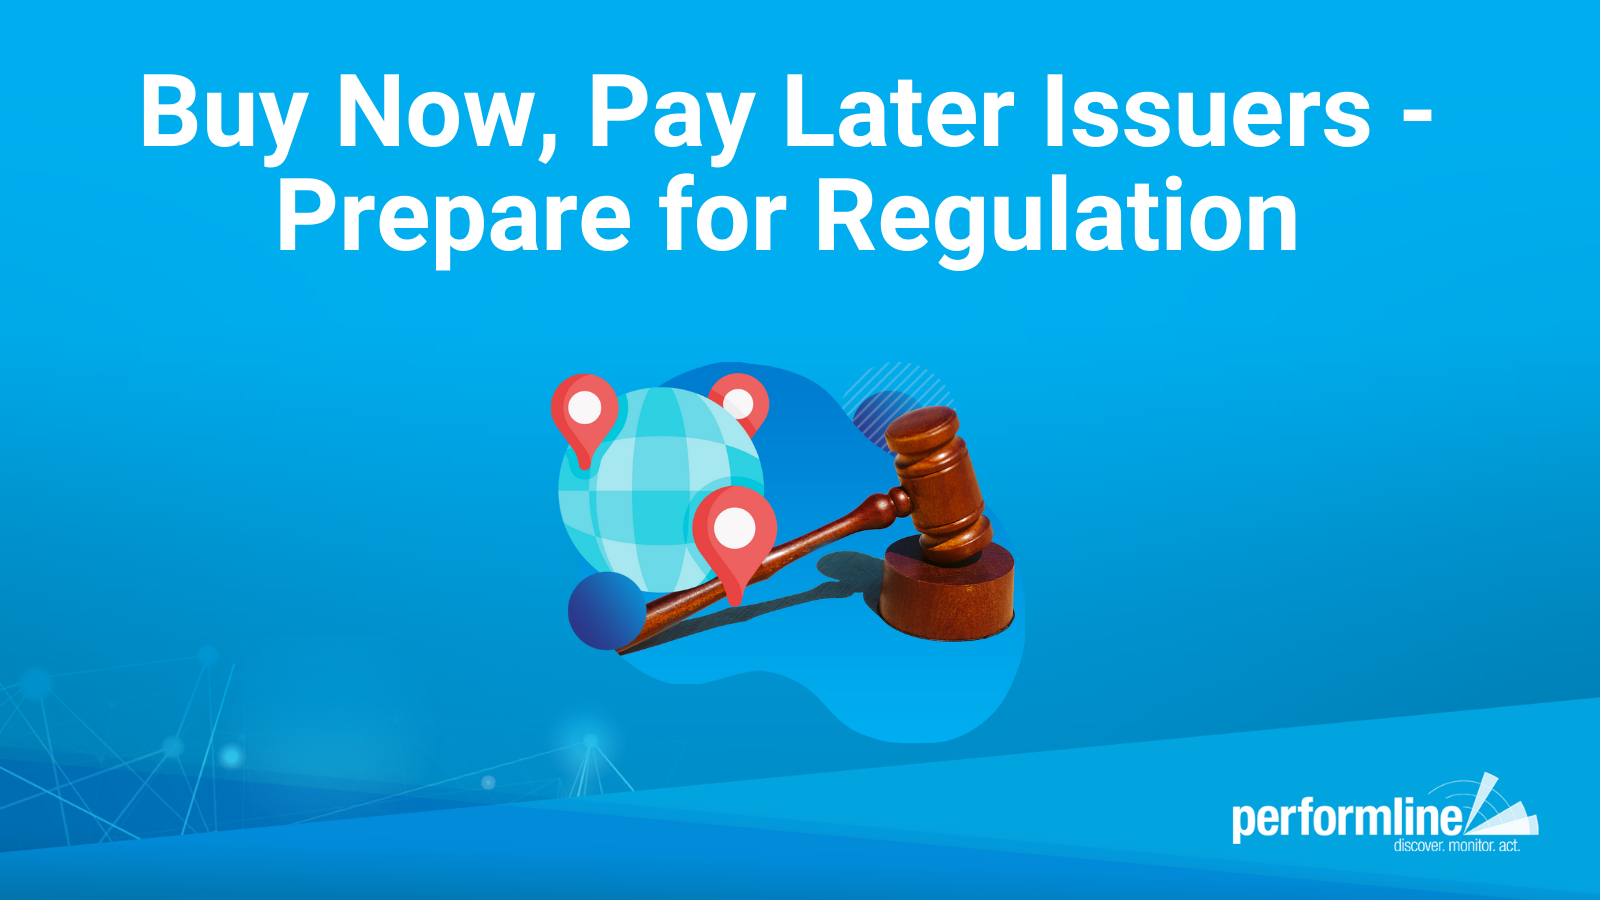 Buy Now, Pay Later Issuers—Prepare for Regulation